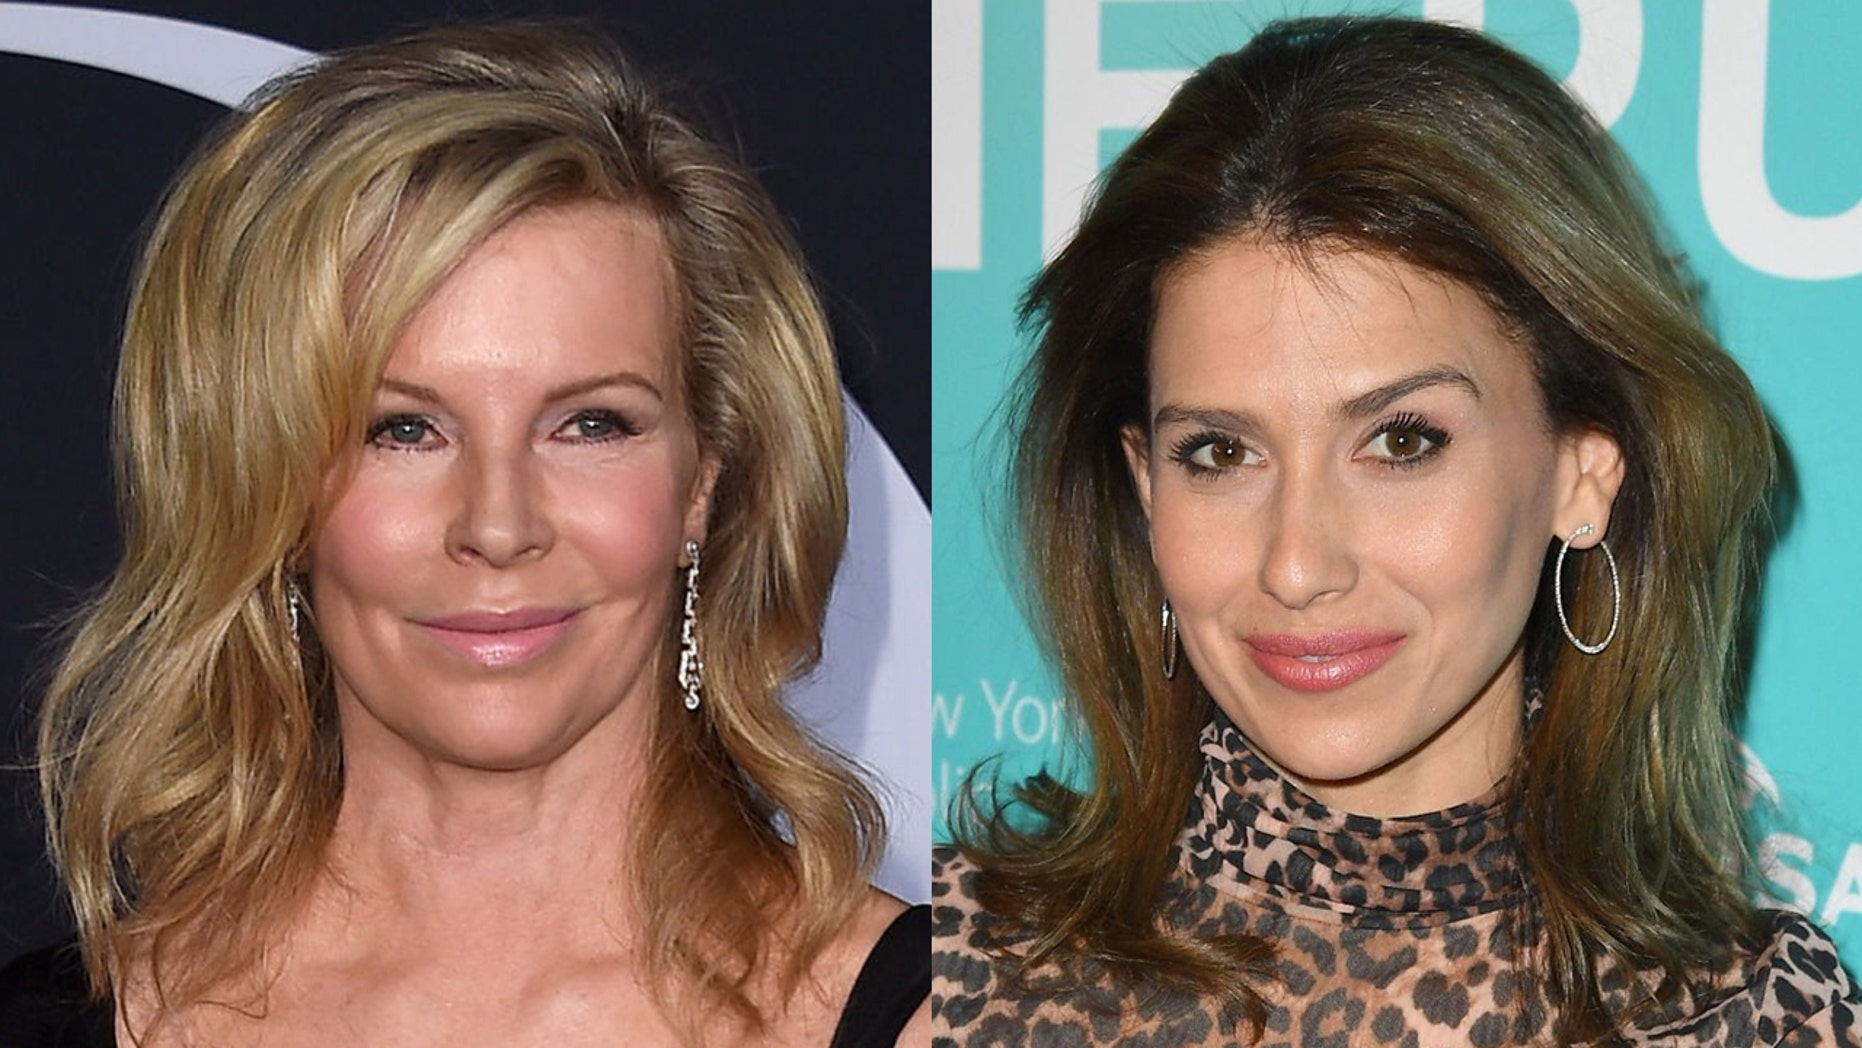 Hilaria Baldwin opened up about her relationship with husband Alec Baldwin's ex Kim Basinger.